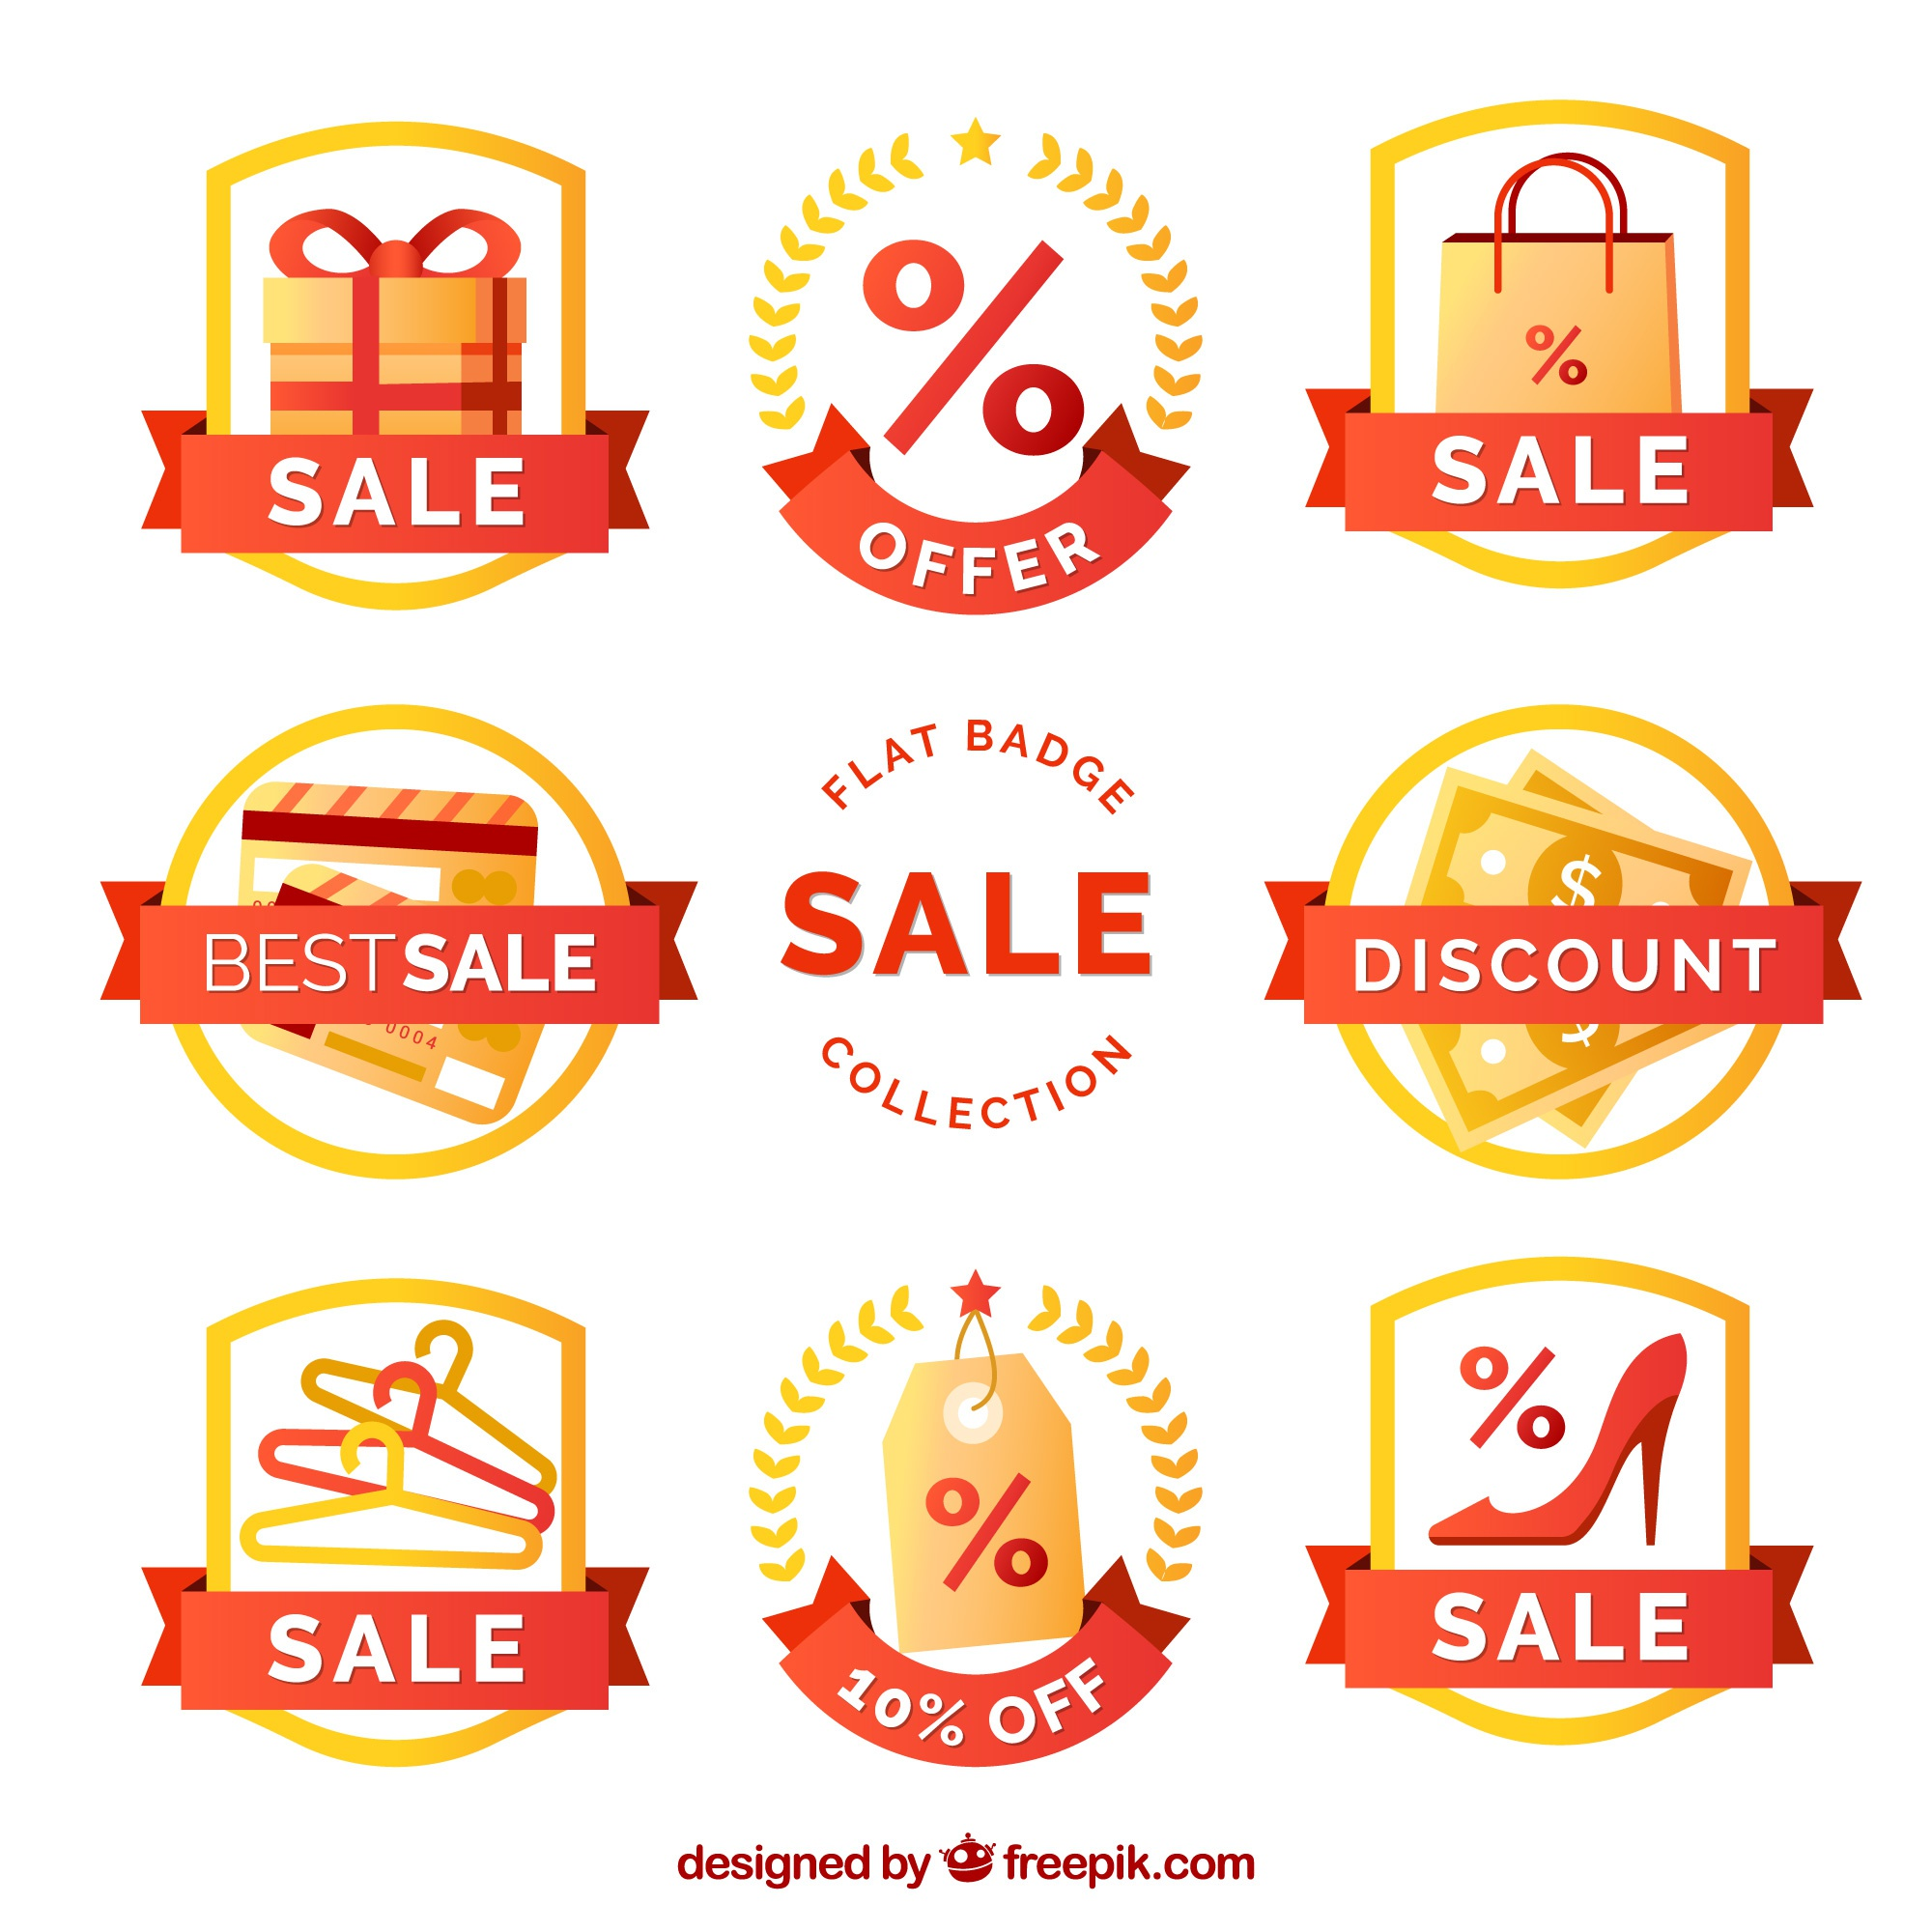 Collection of decorative sale badges in flat design